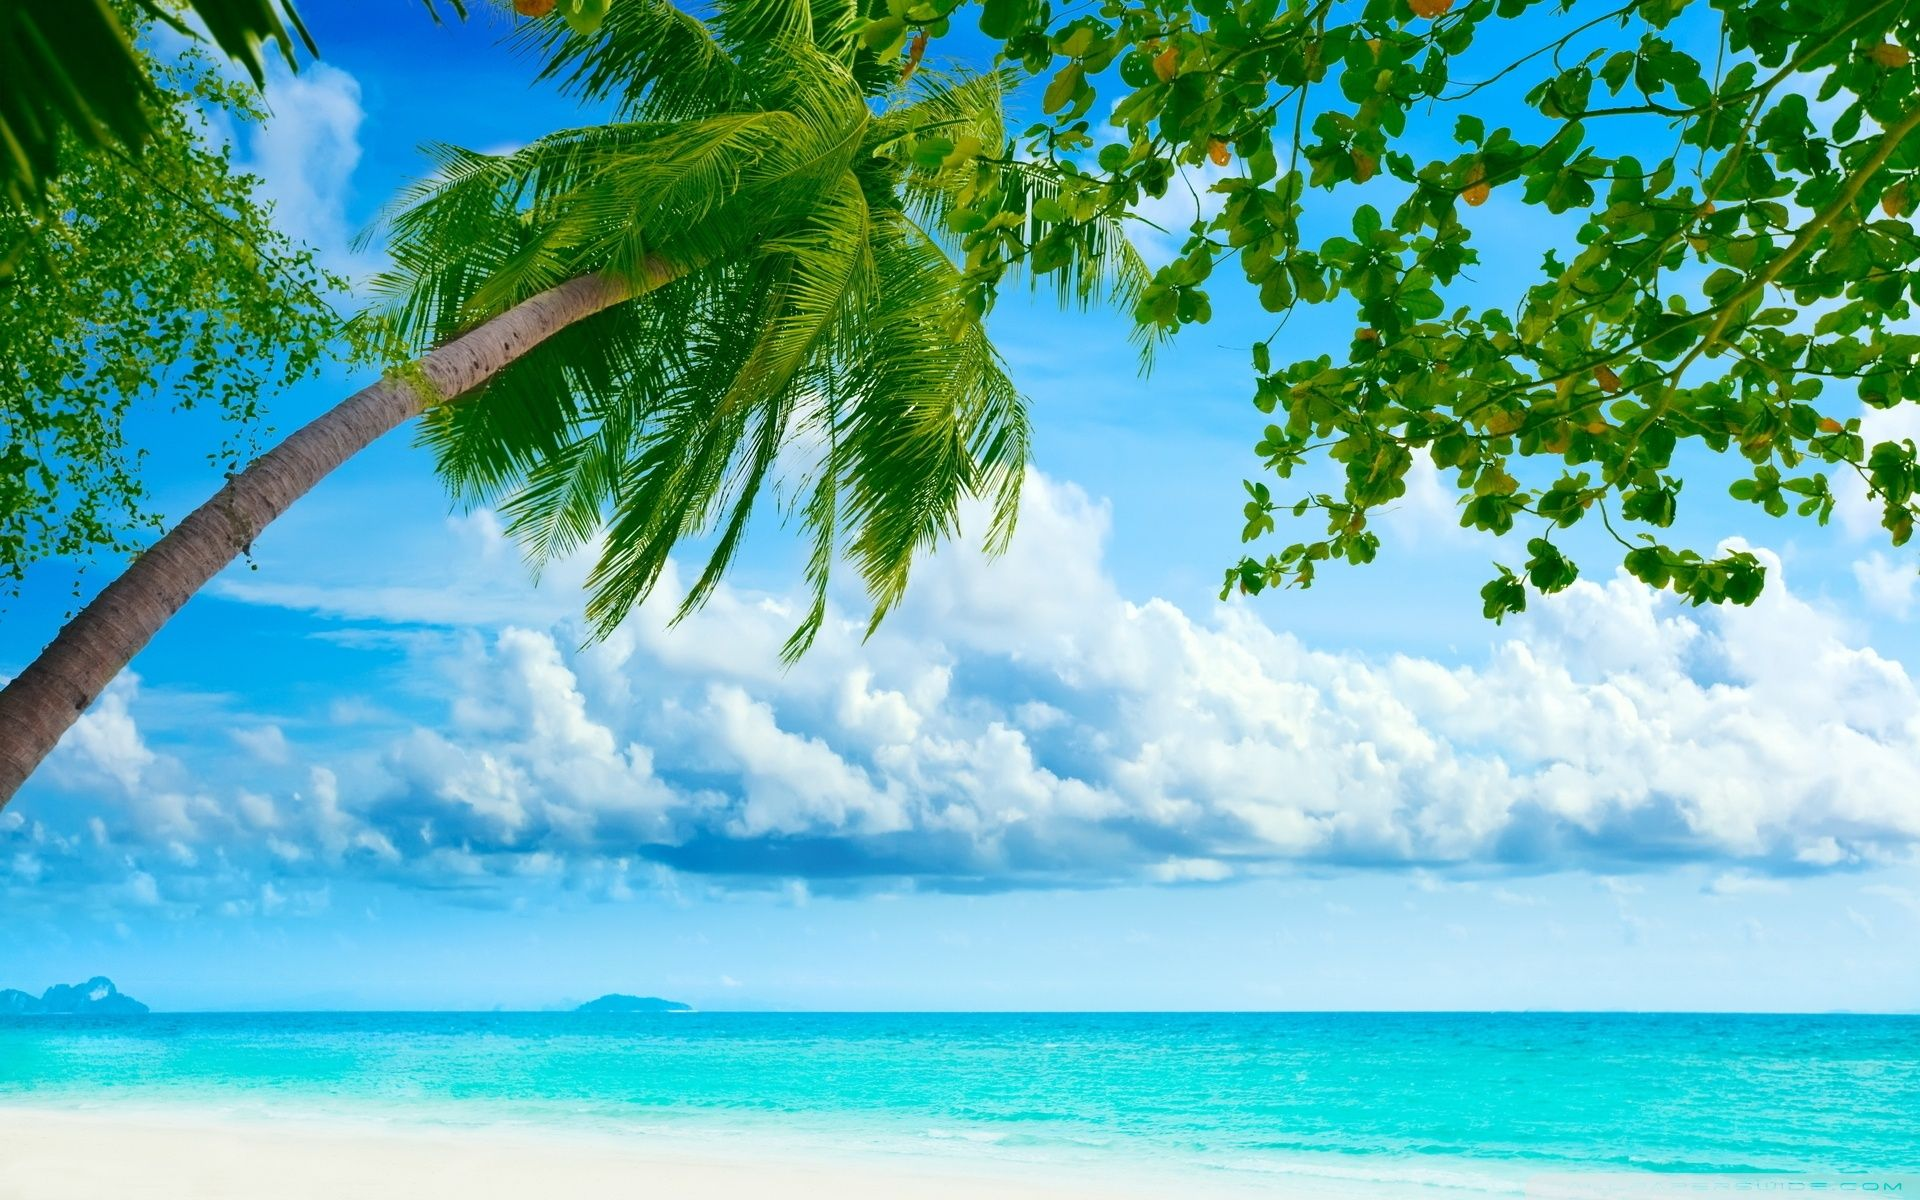 Tropical Beach Beautiful Hd Desktop Wallpapers Free Wide Images Jpg